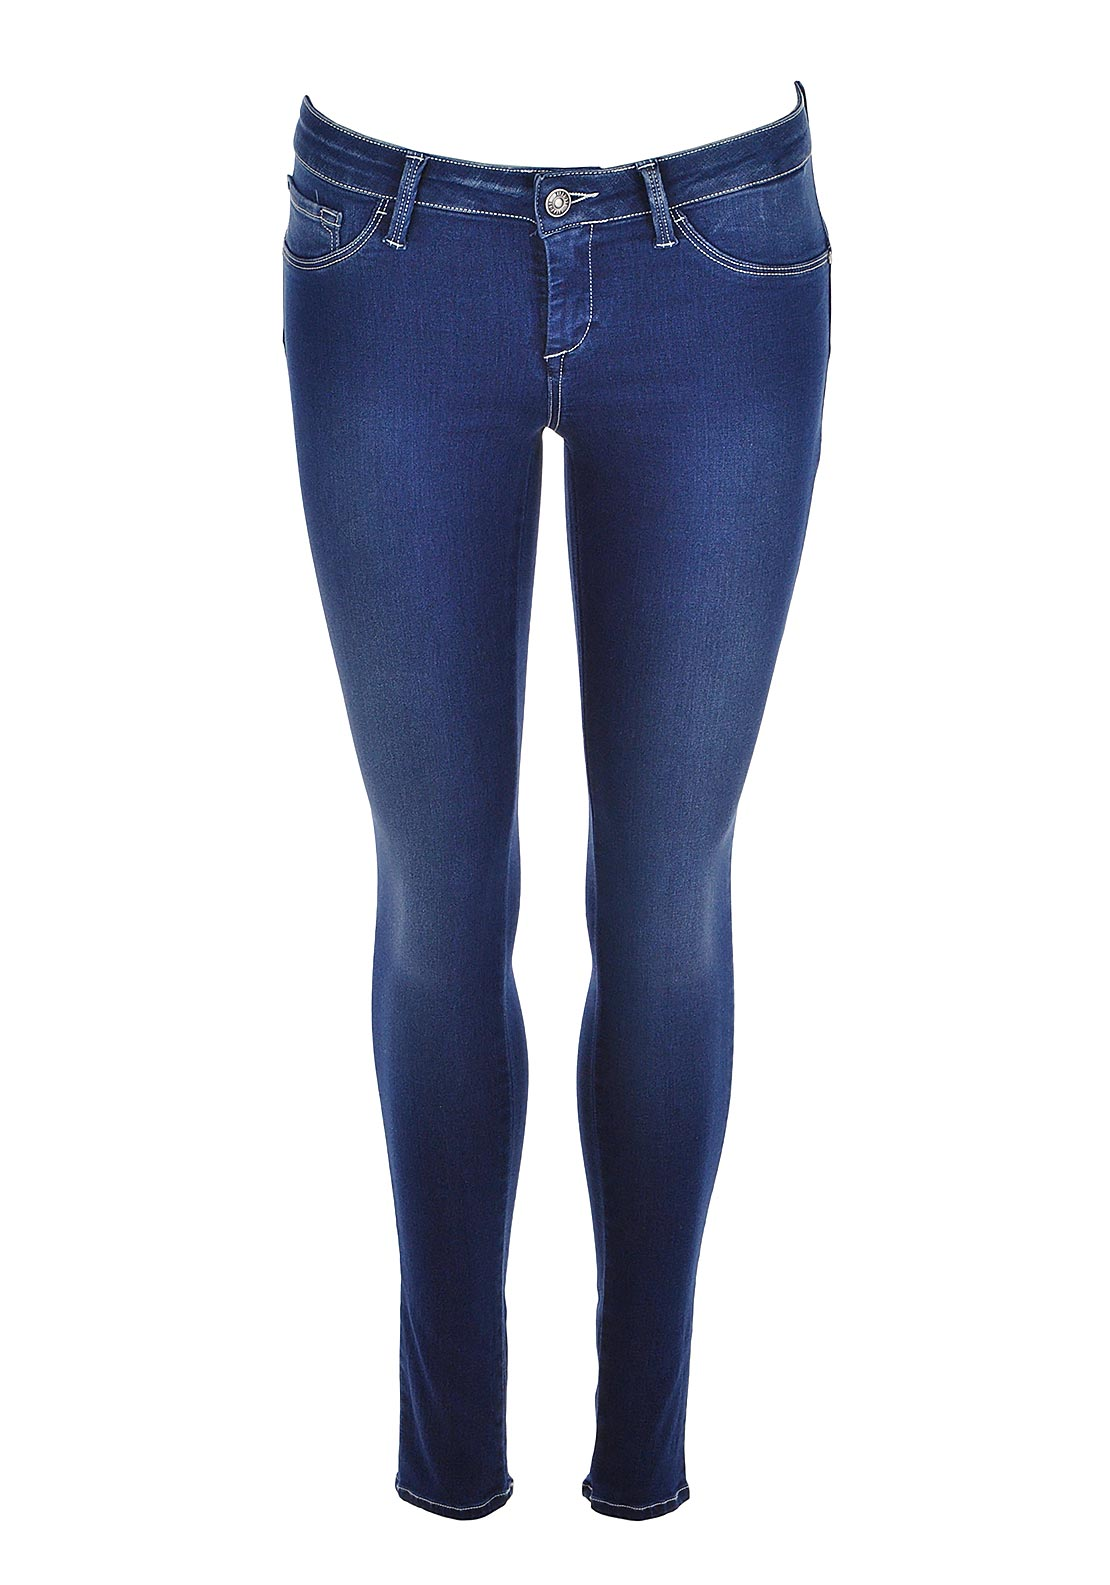 Tiffosi One Size Fits All Up Jeans, Mid Blue